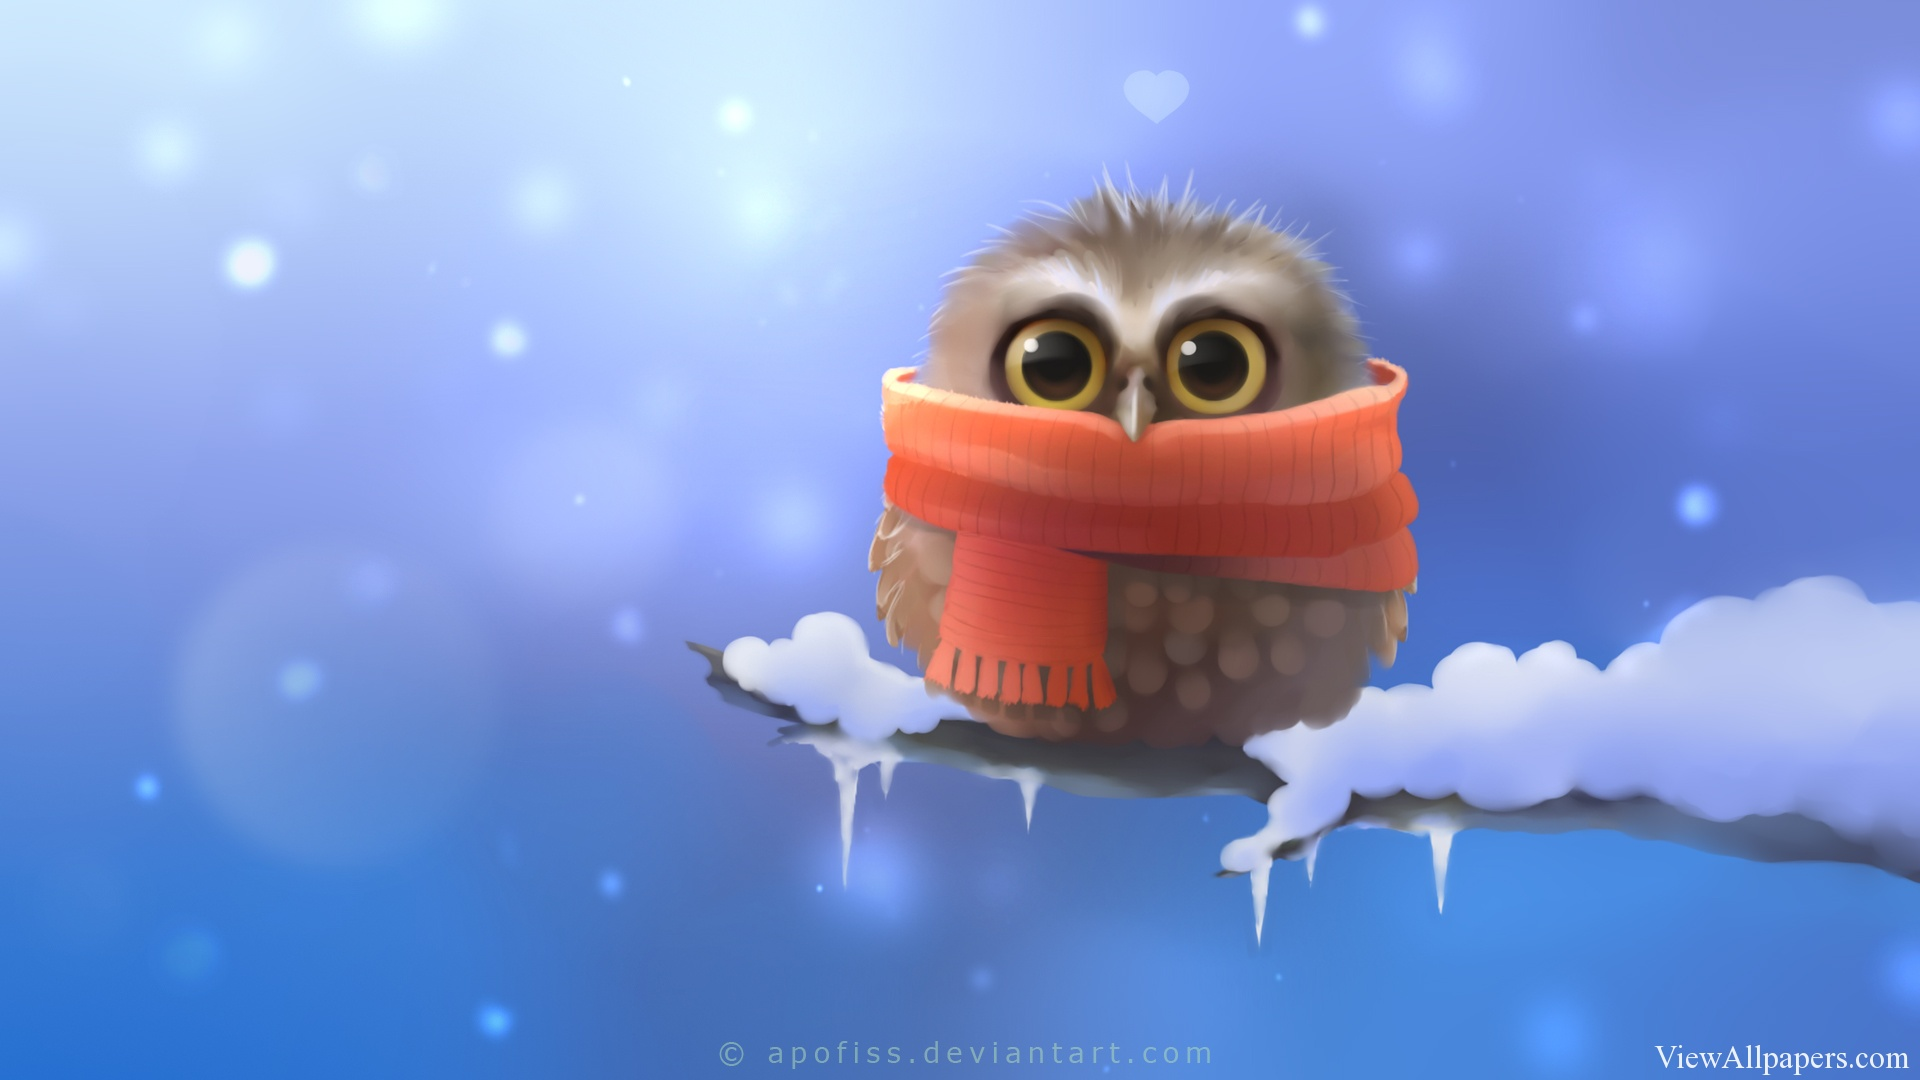 Cute 3D Owl High Resolution download Cute 3D Owl For PC 1920x1080